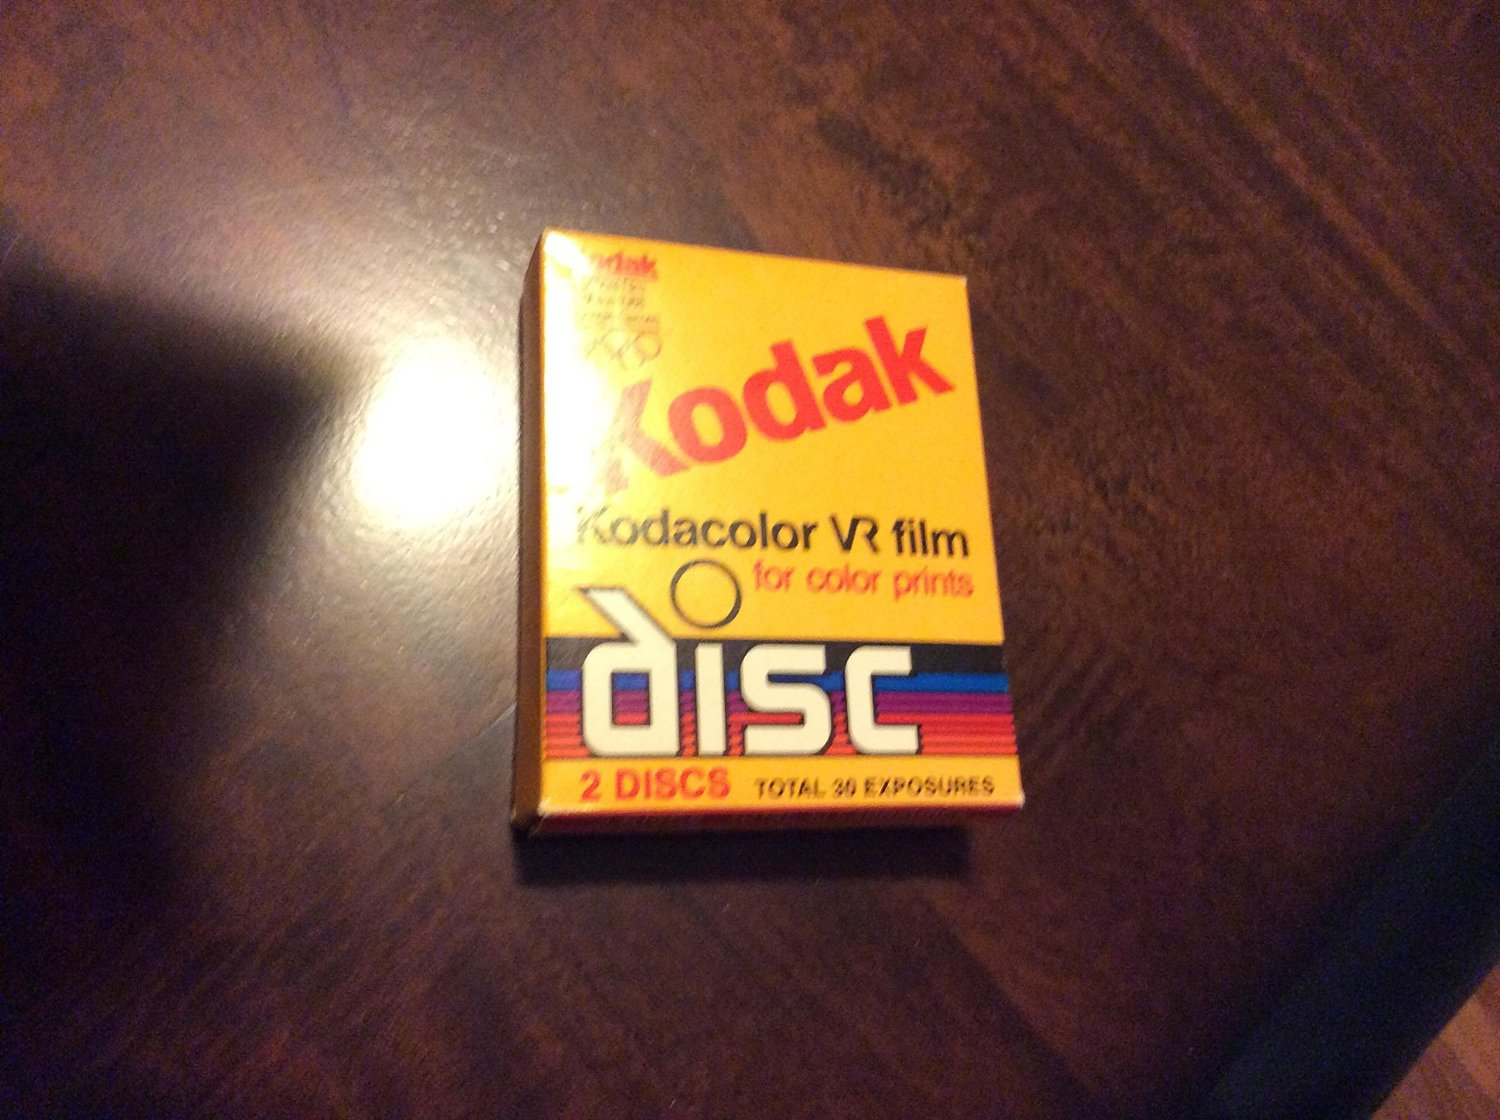 Eastman Kodak Company Kodak Kodacolor VR Film for Color Prints Kodak Disc Film 2 Disc Total 30 Exposures CAT 155 4633 Model# Kodak CVR Disc-15-2 Blister Package (2 Discs, 30 Exposures)